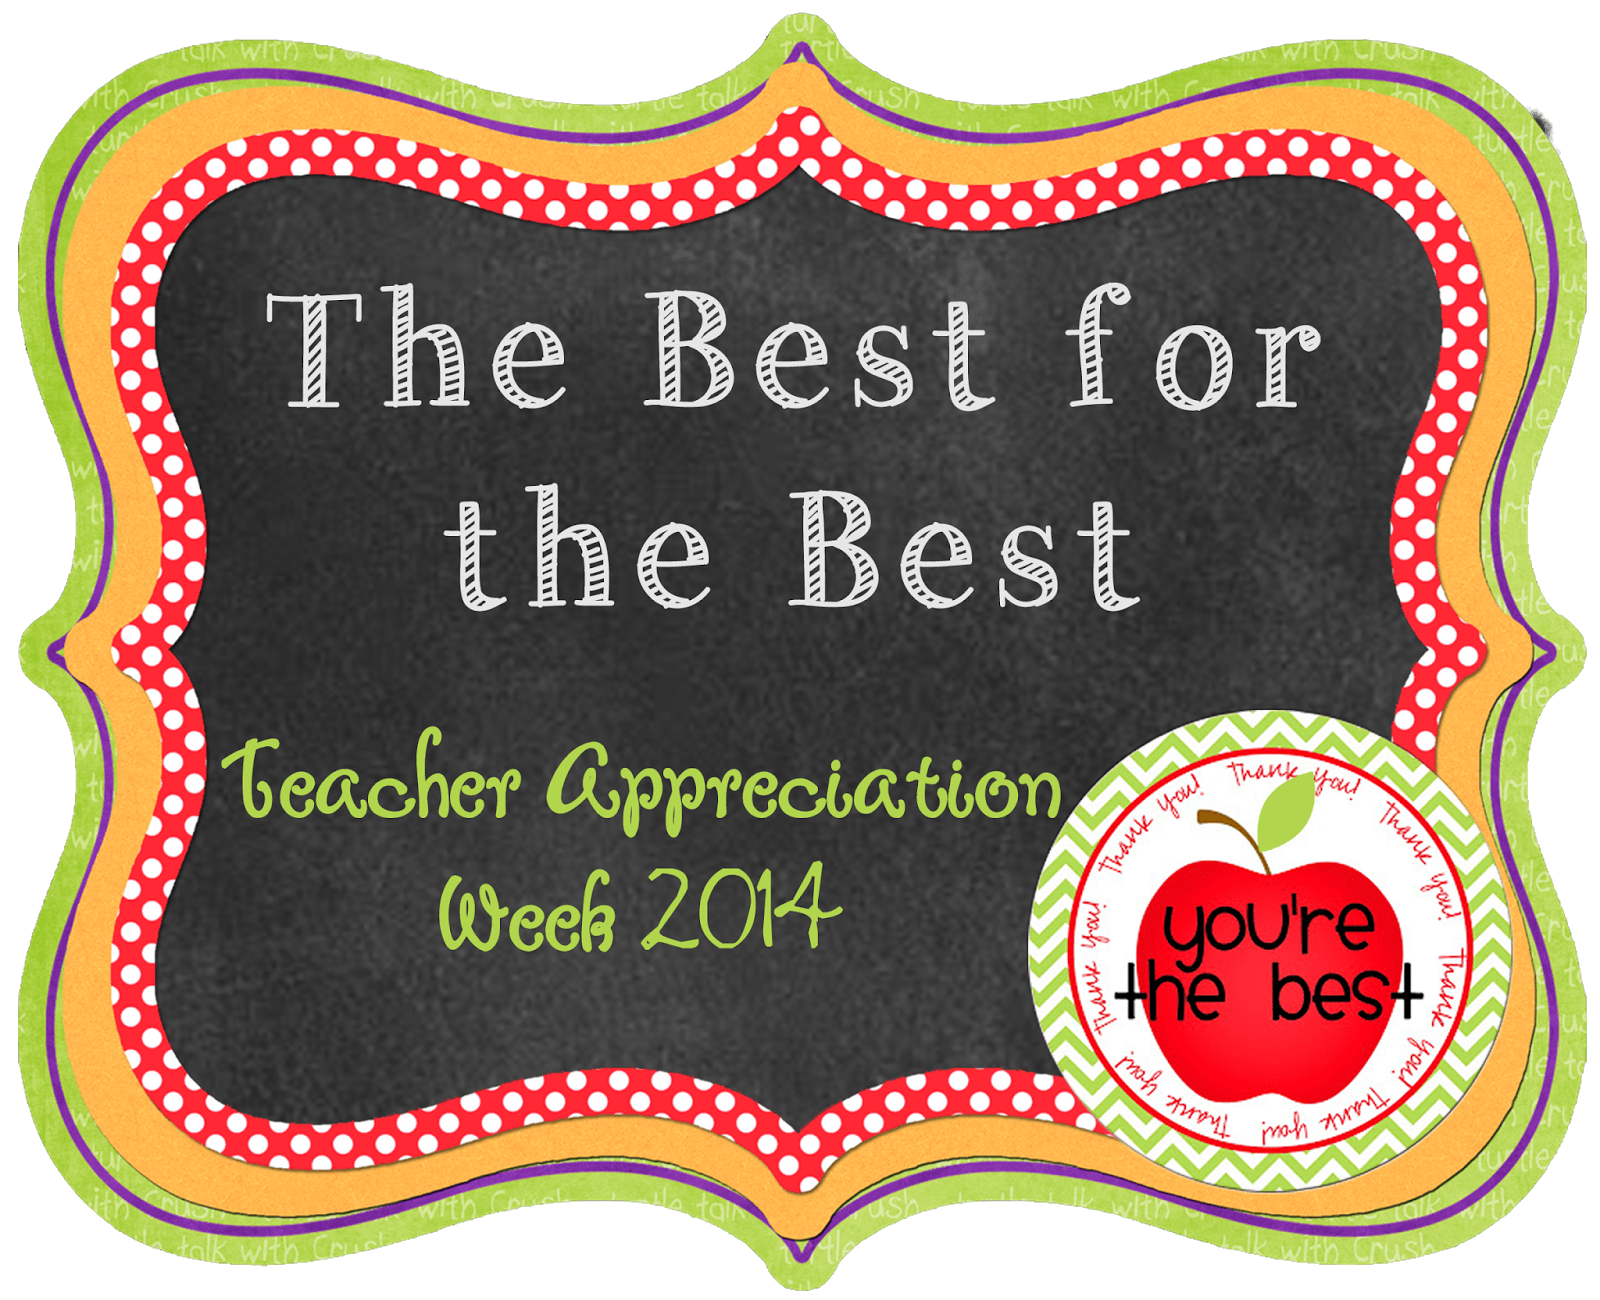 Mystery clipart teacher. Appreciation giveaway math messages